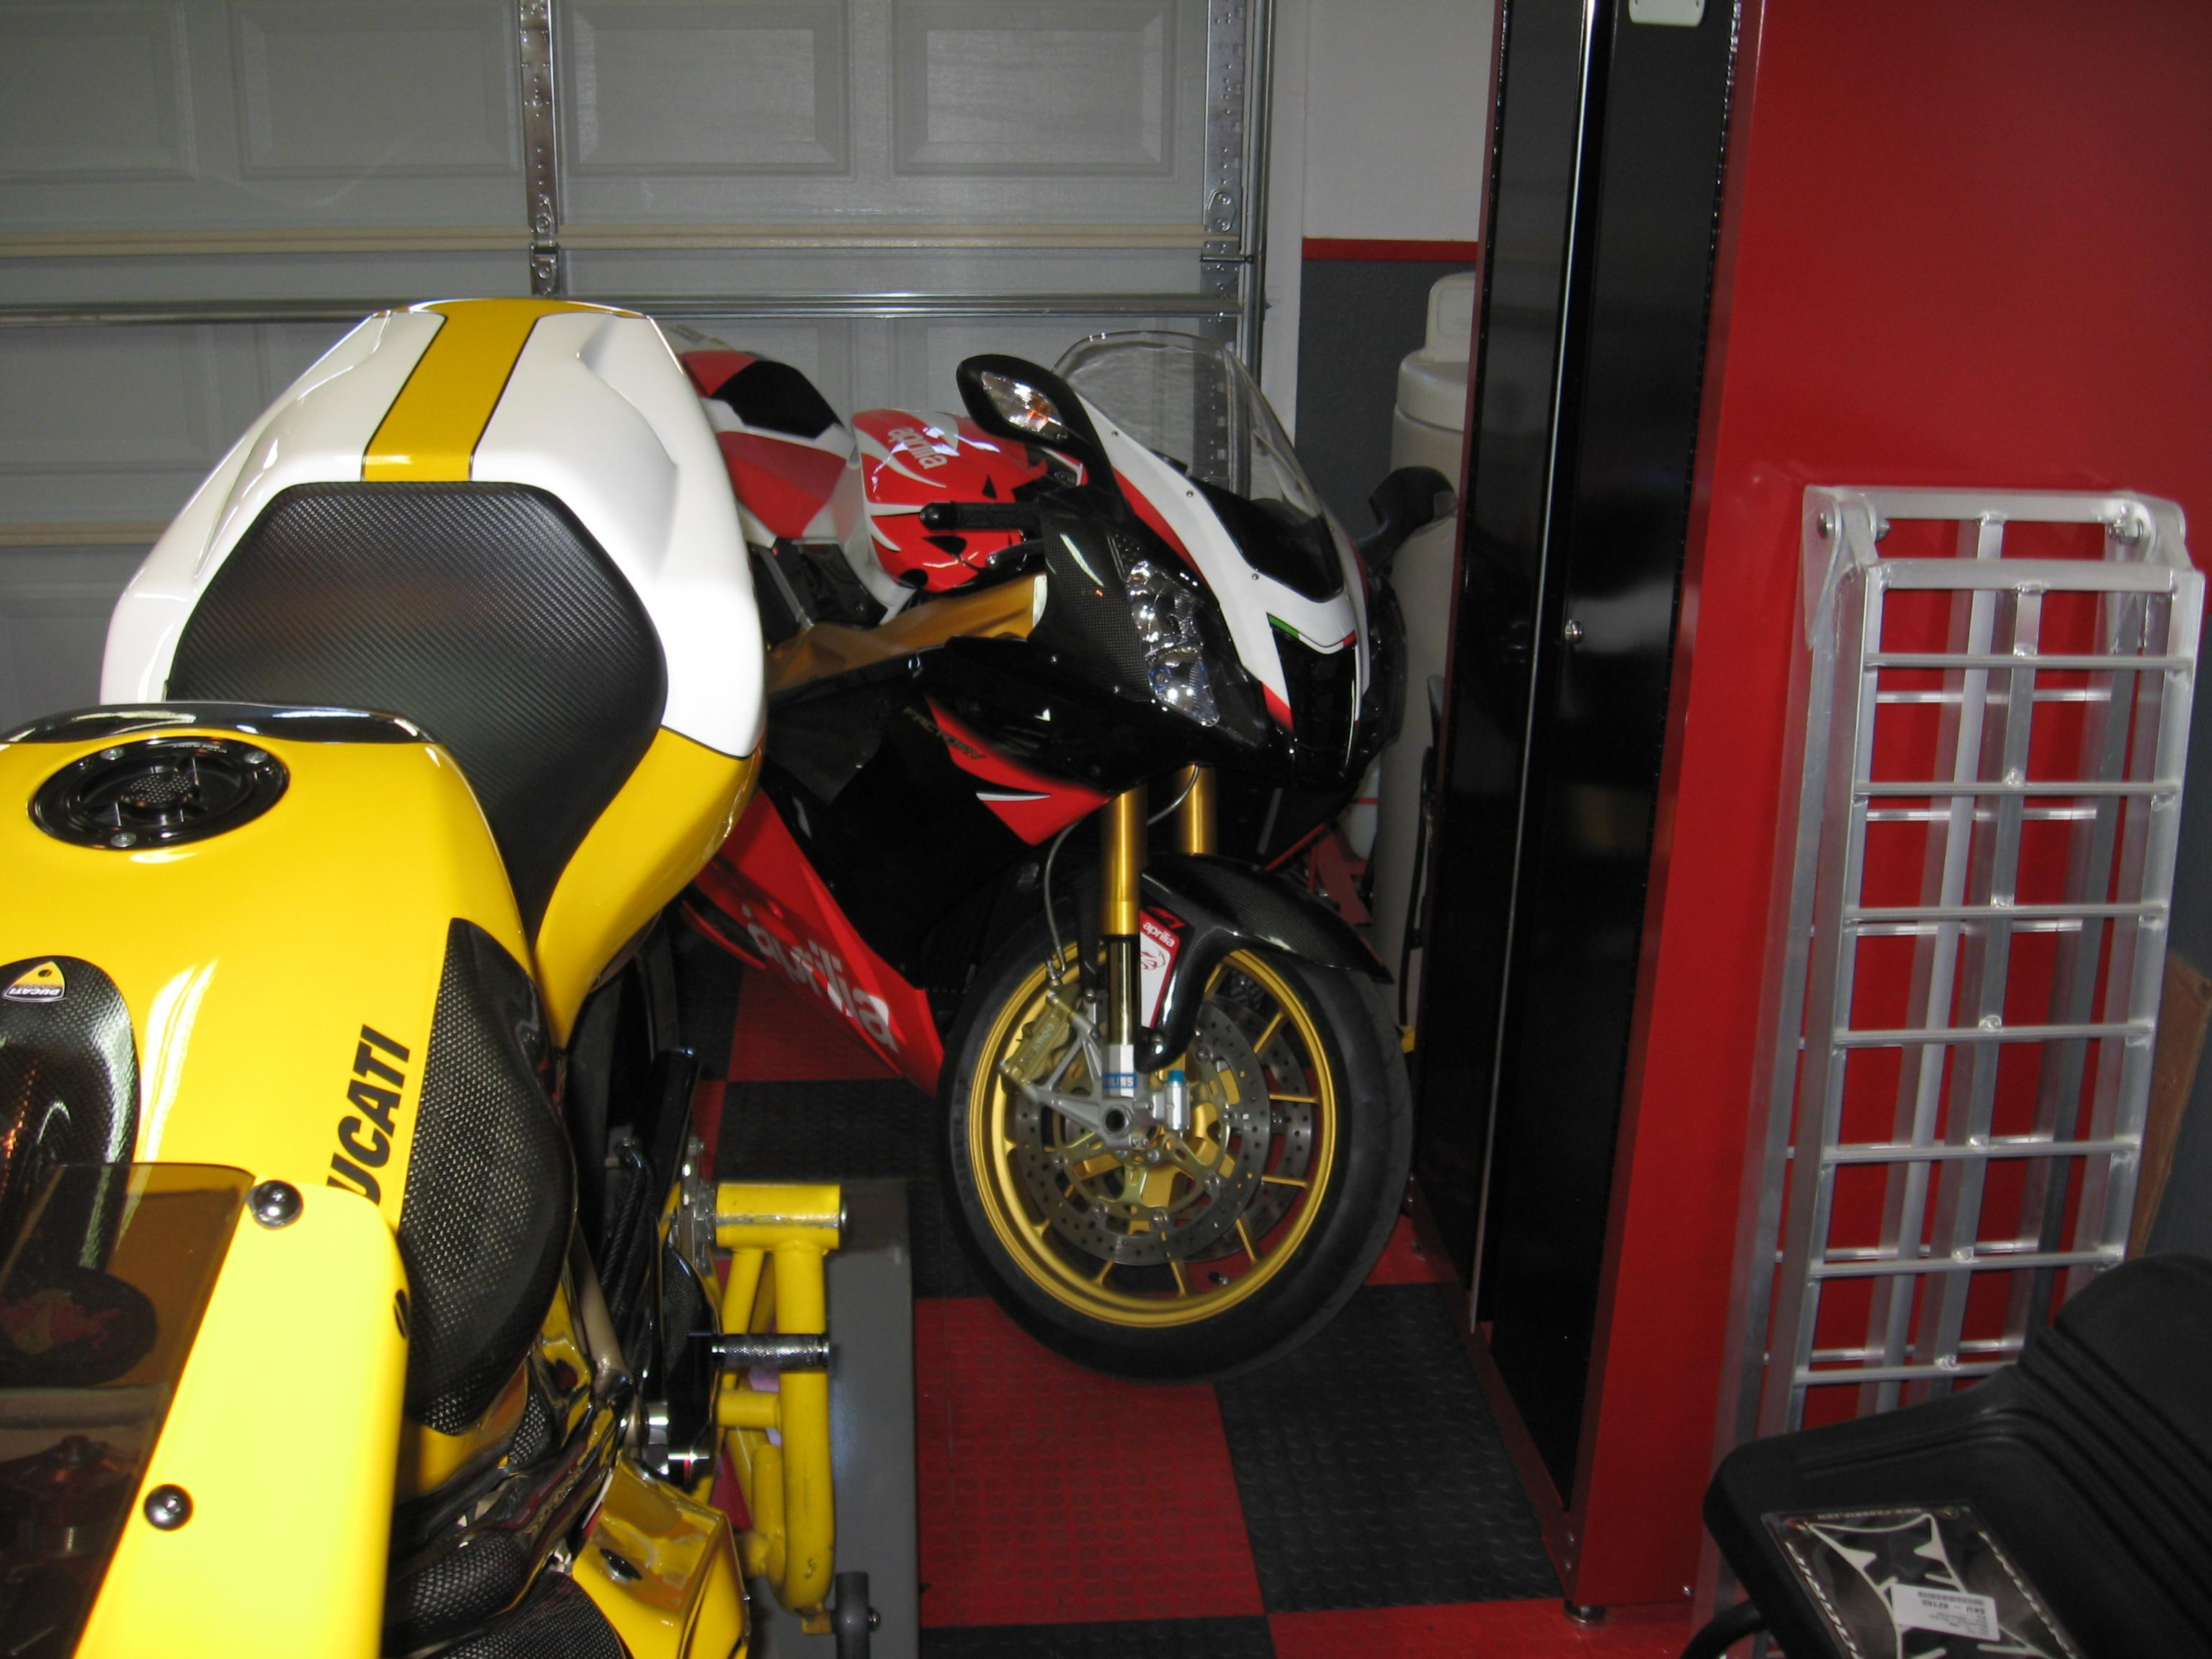 Post a pic of your other bikes in the stable-img_1038.jpg